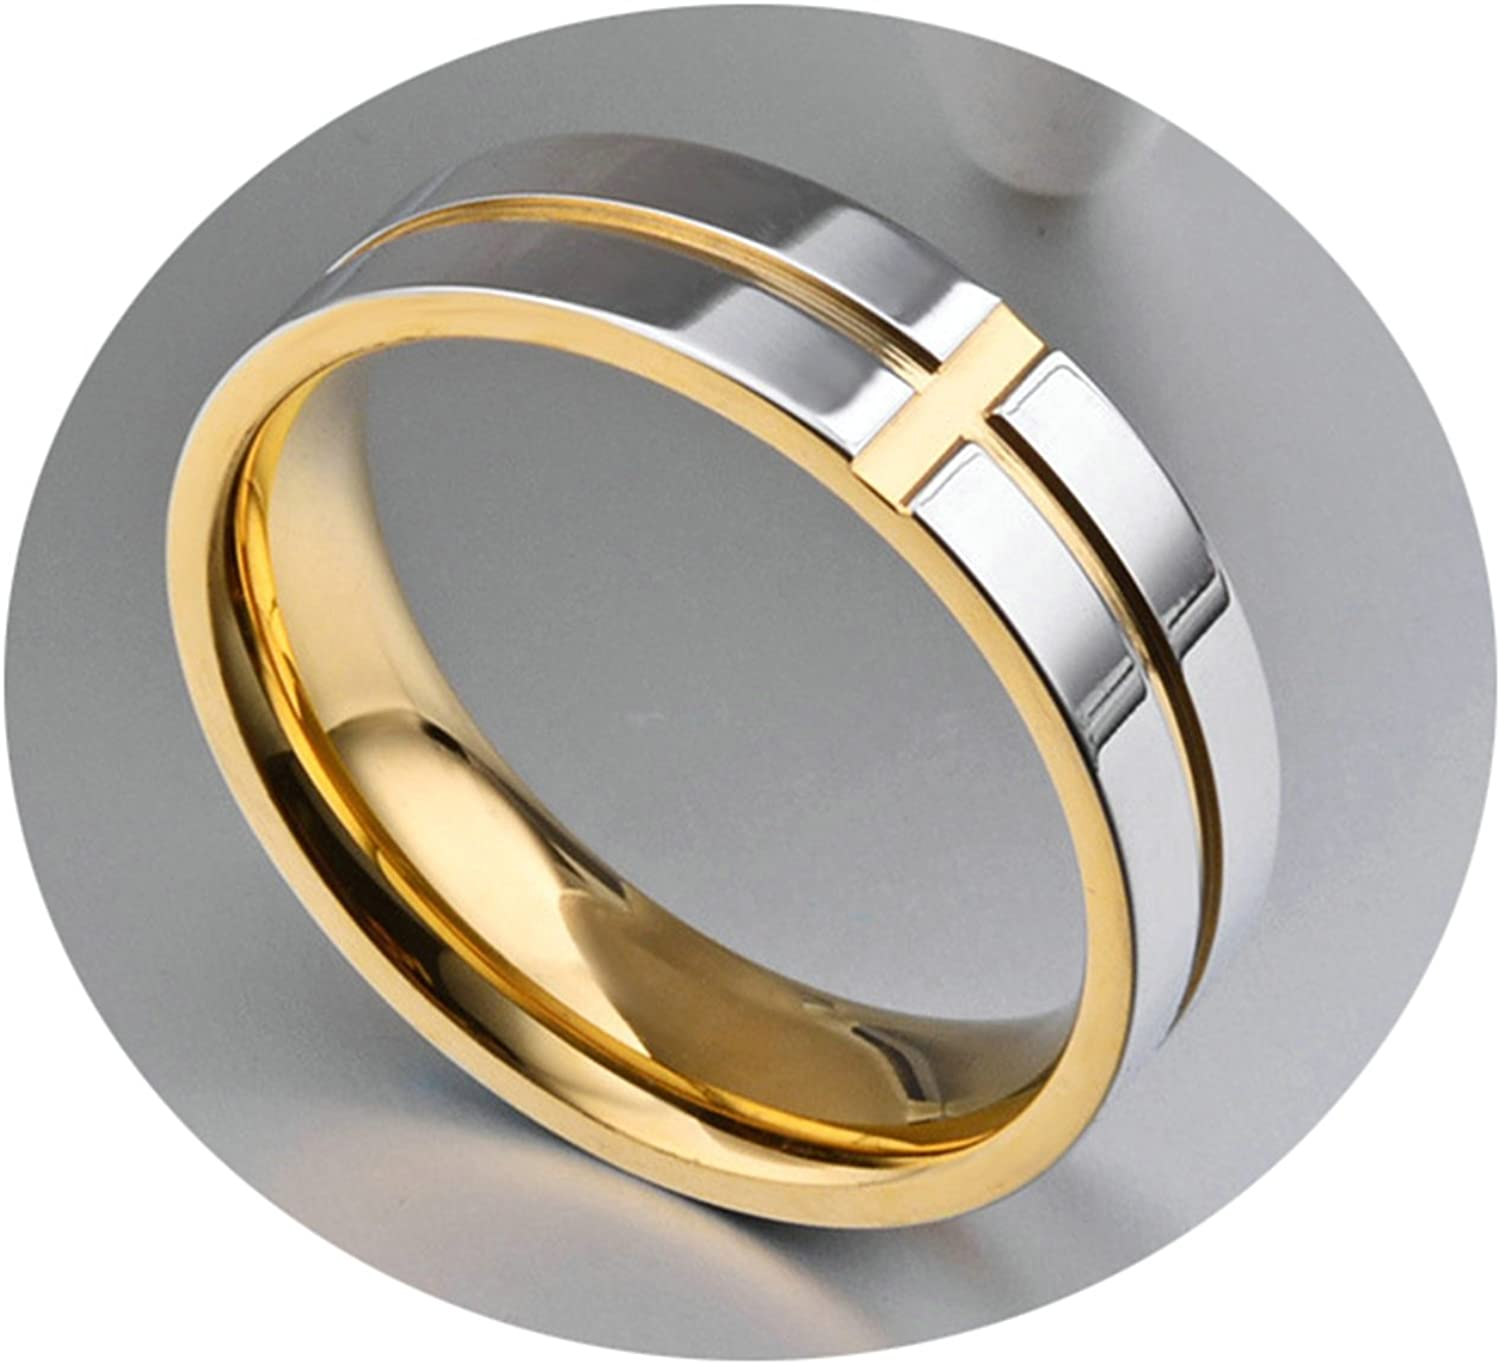 Bishilin Stainless Steel Rings for Him Cross Round Wedding Ring for Men Gold Size 9